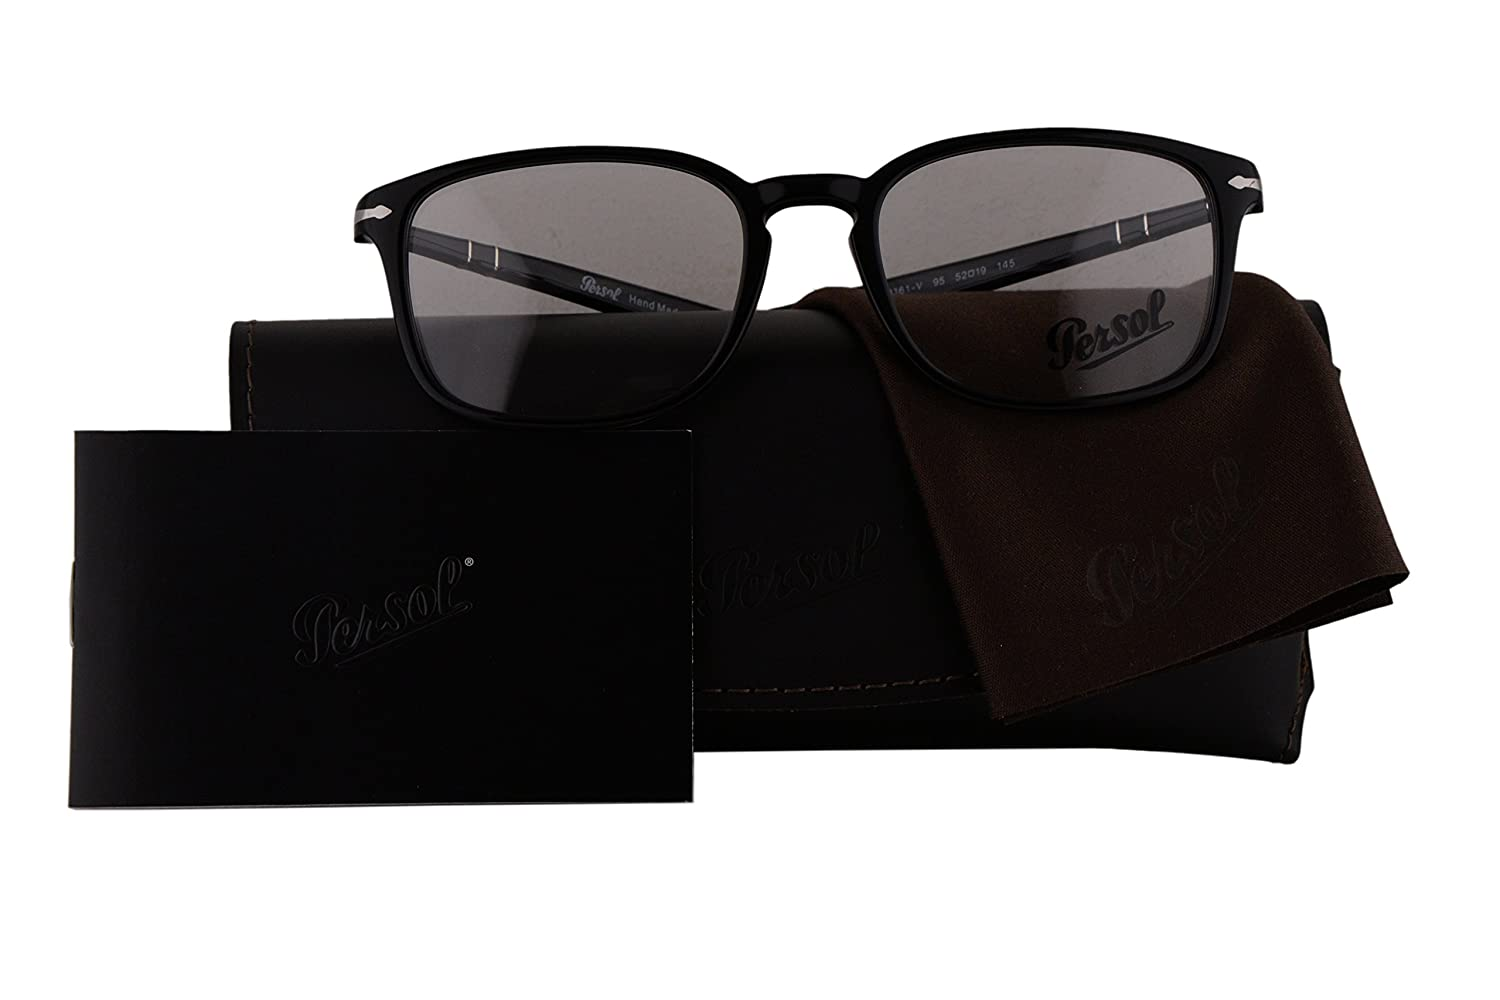 f798f7209ed Persol Authentic Eyeglasses PO3161V Shiny Black w Clear Demo Lens 95 PO 3161 -V (52mm)  Amazon.co.uk  Clothing